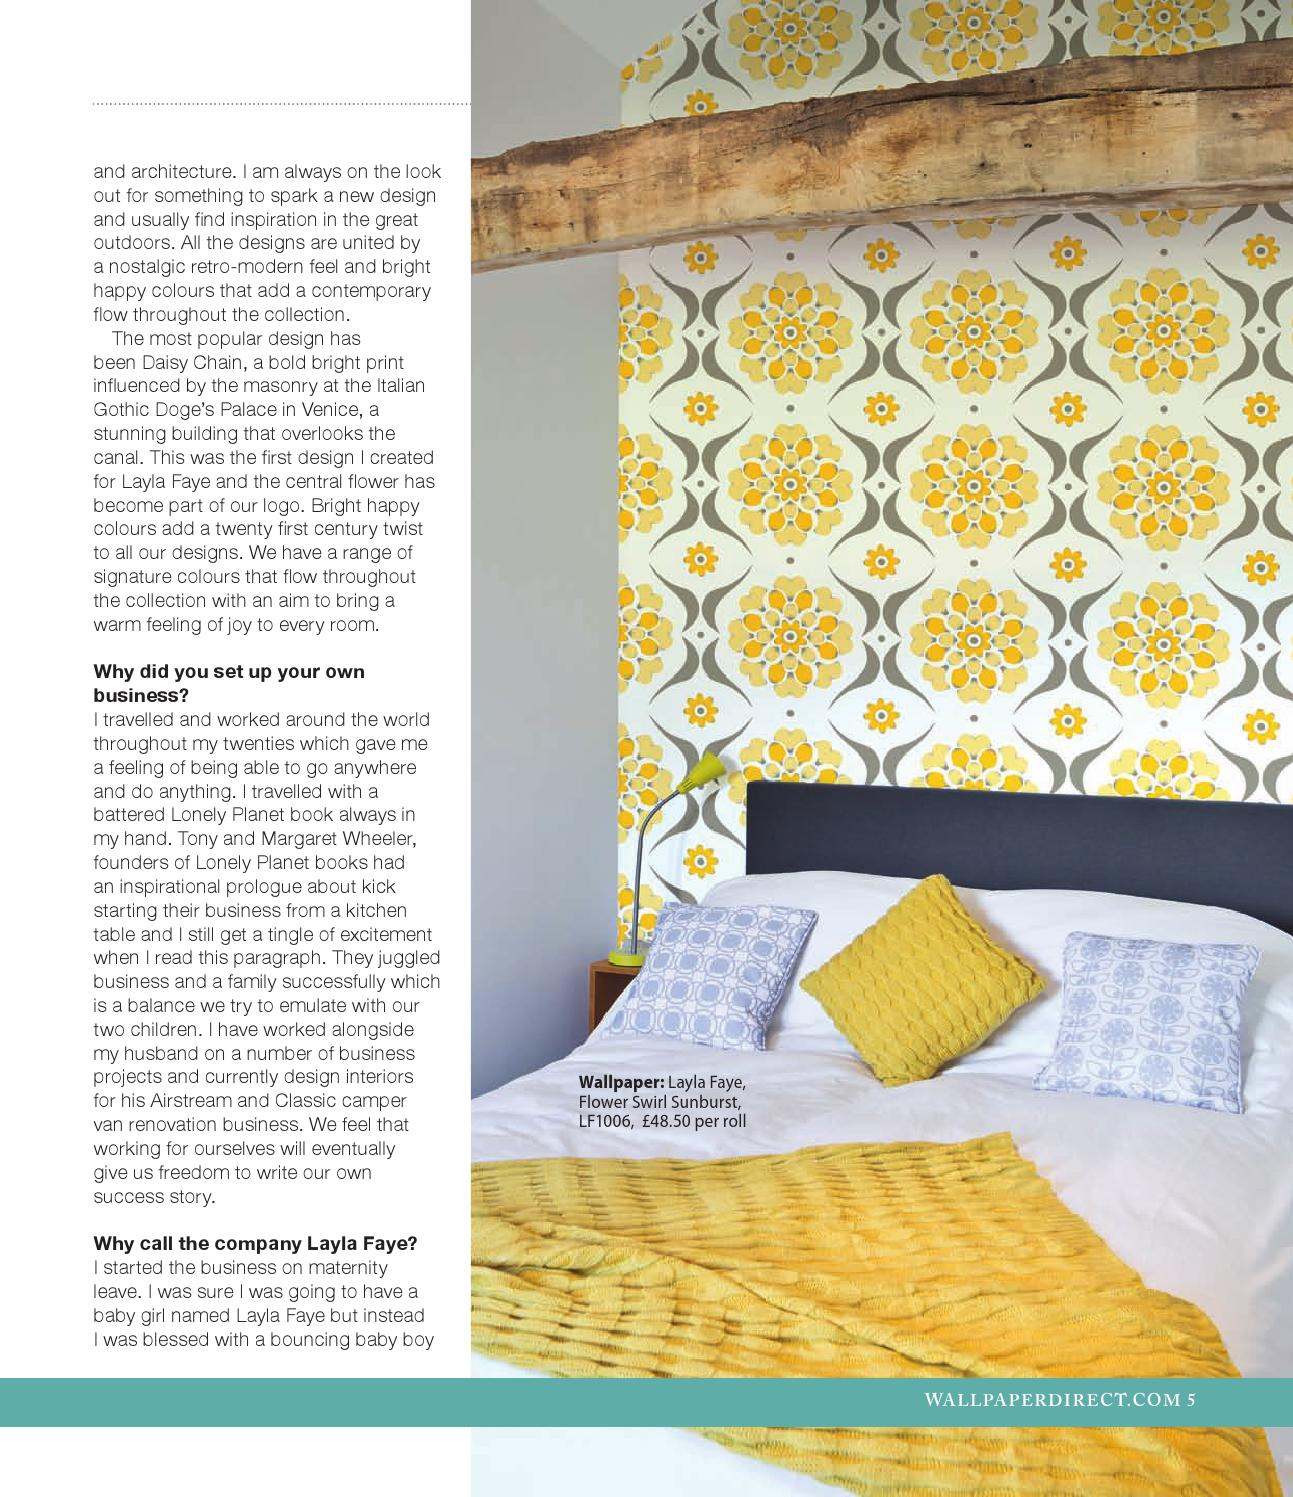 Wallpaper direct - Spring 2015